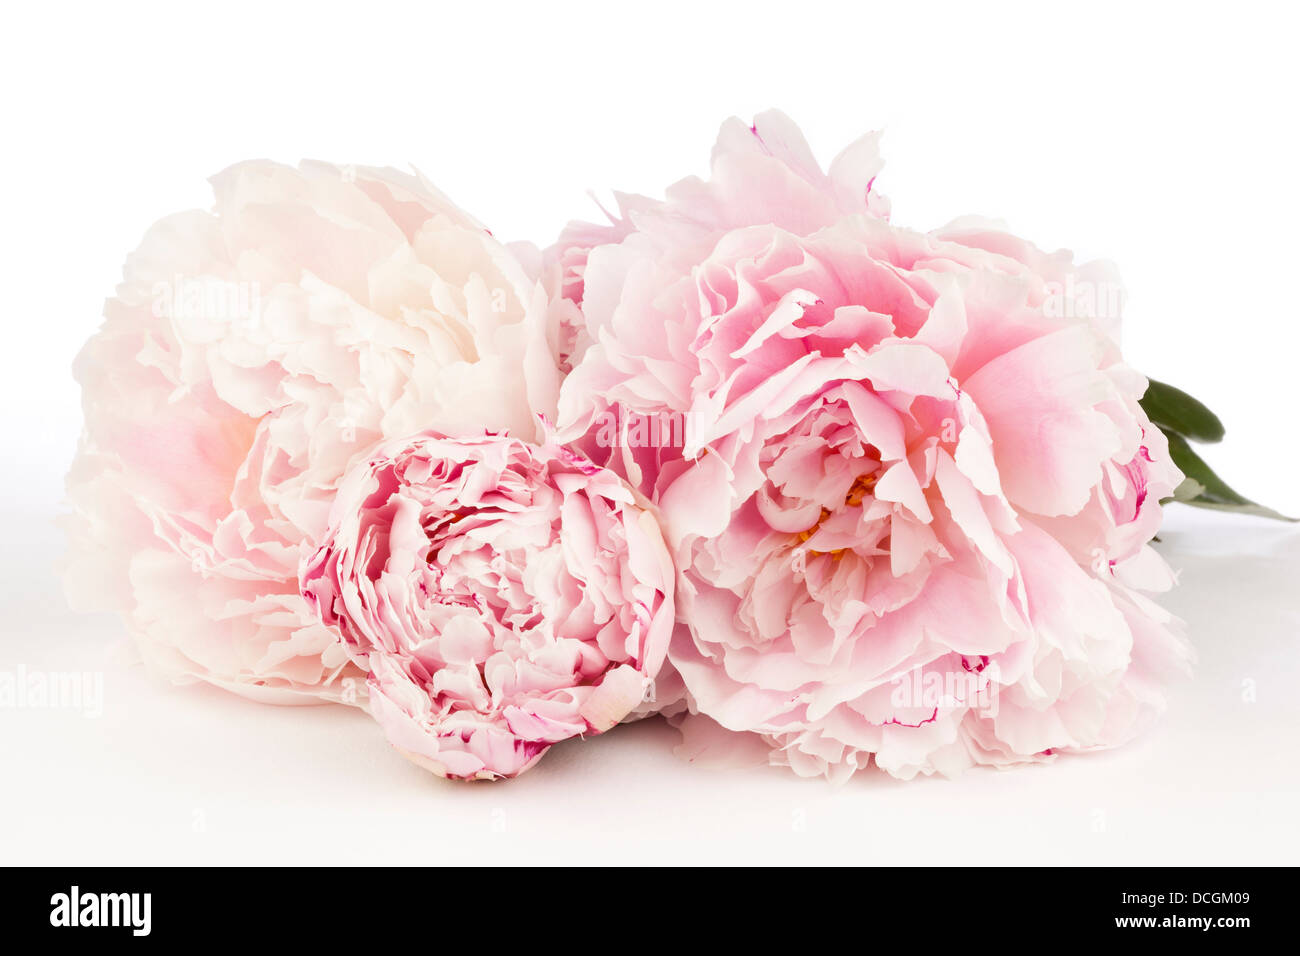 Three Peony Flowers on a white background - Stock Image